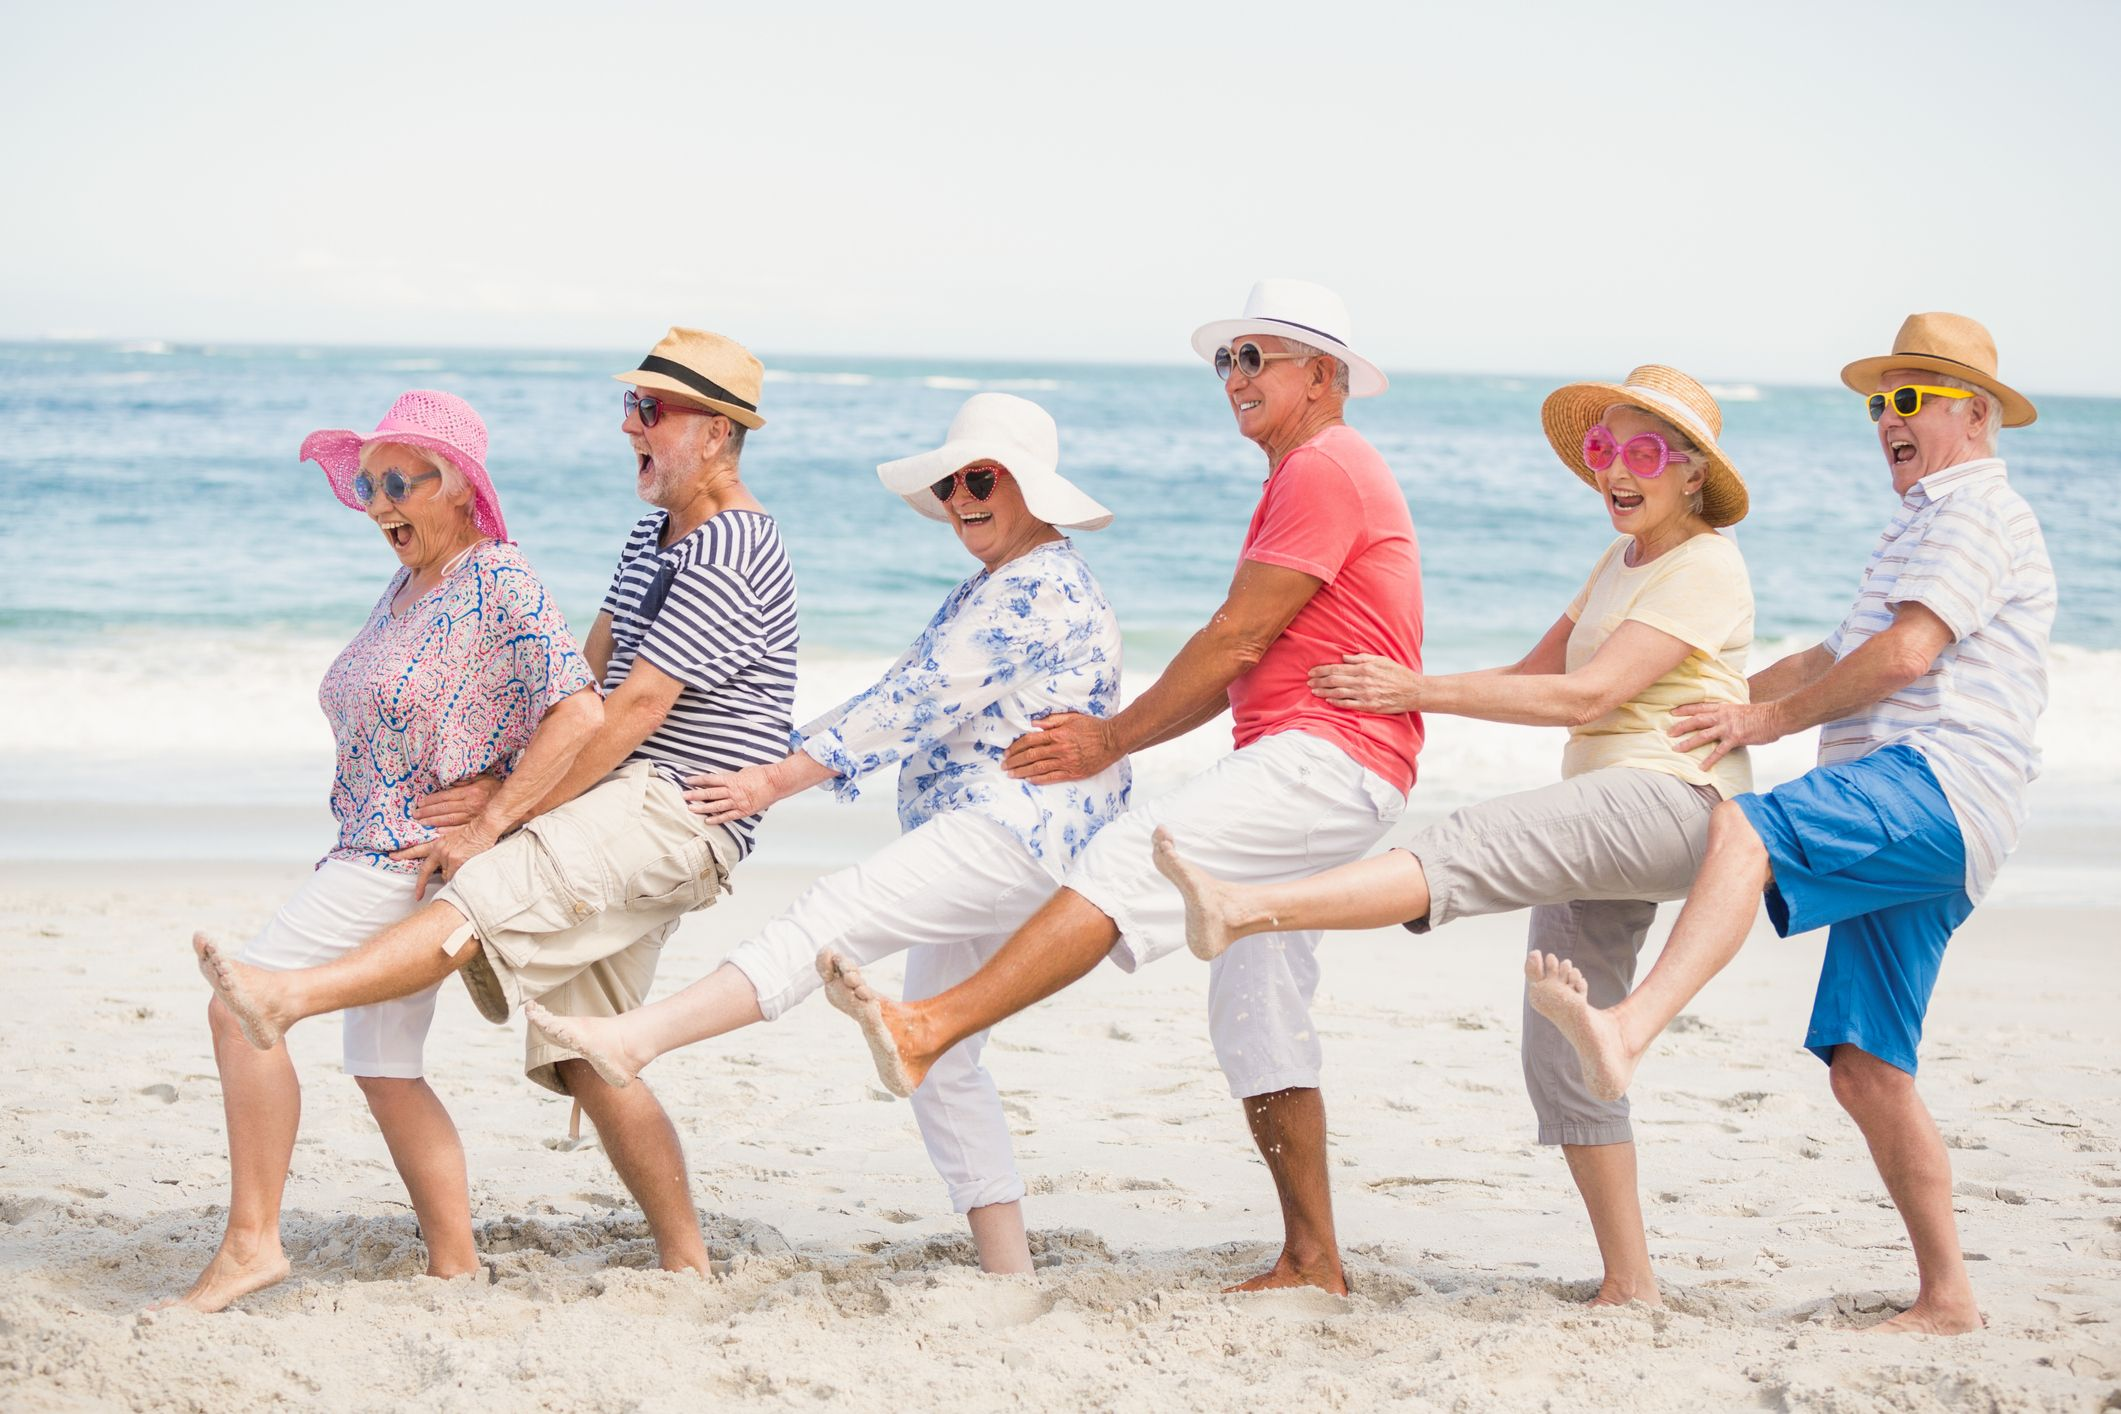 old-people-conga-dance-beach-stock